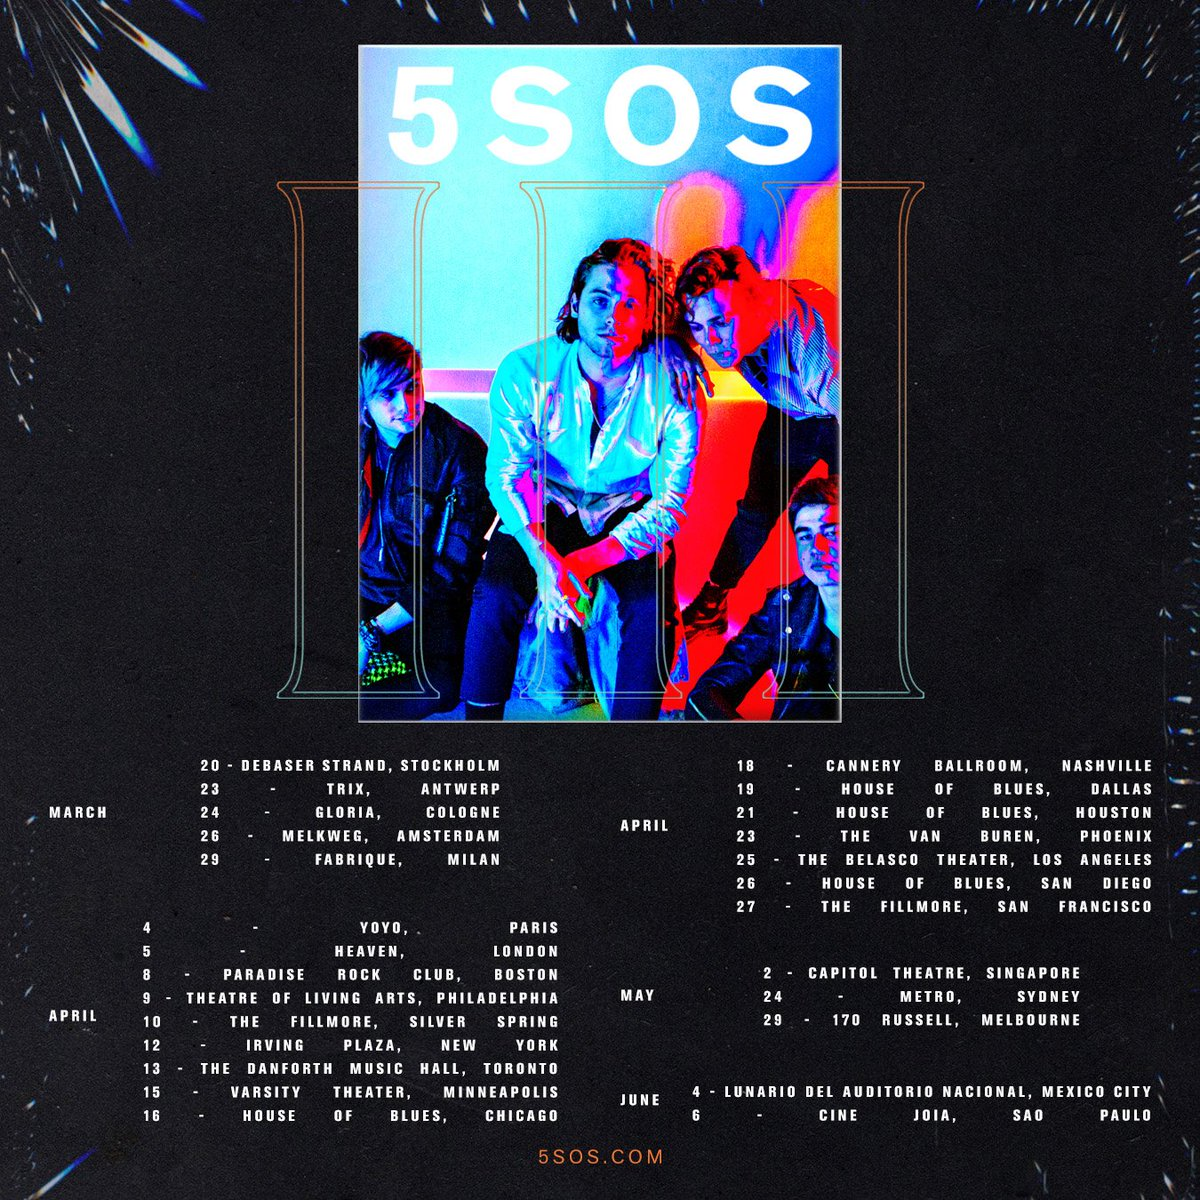 // WE ARE COMING TO A CITY NEAR YOU // HERE ARE THE TOUR DATES // 5SOS3 // https://t.co/oGoqIhH9rg